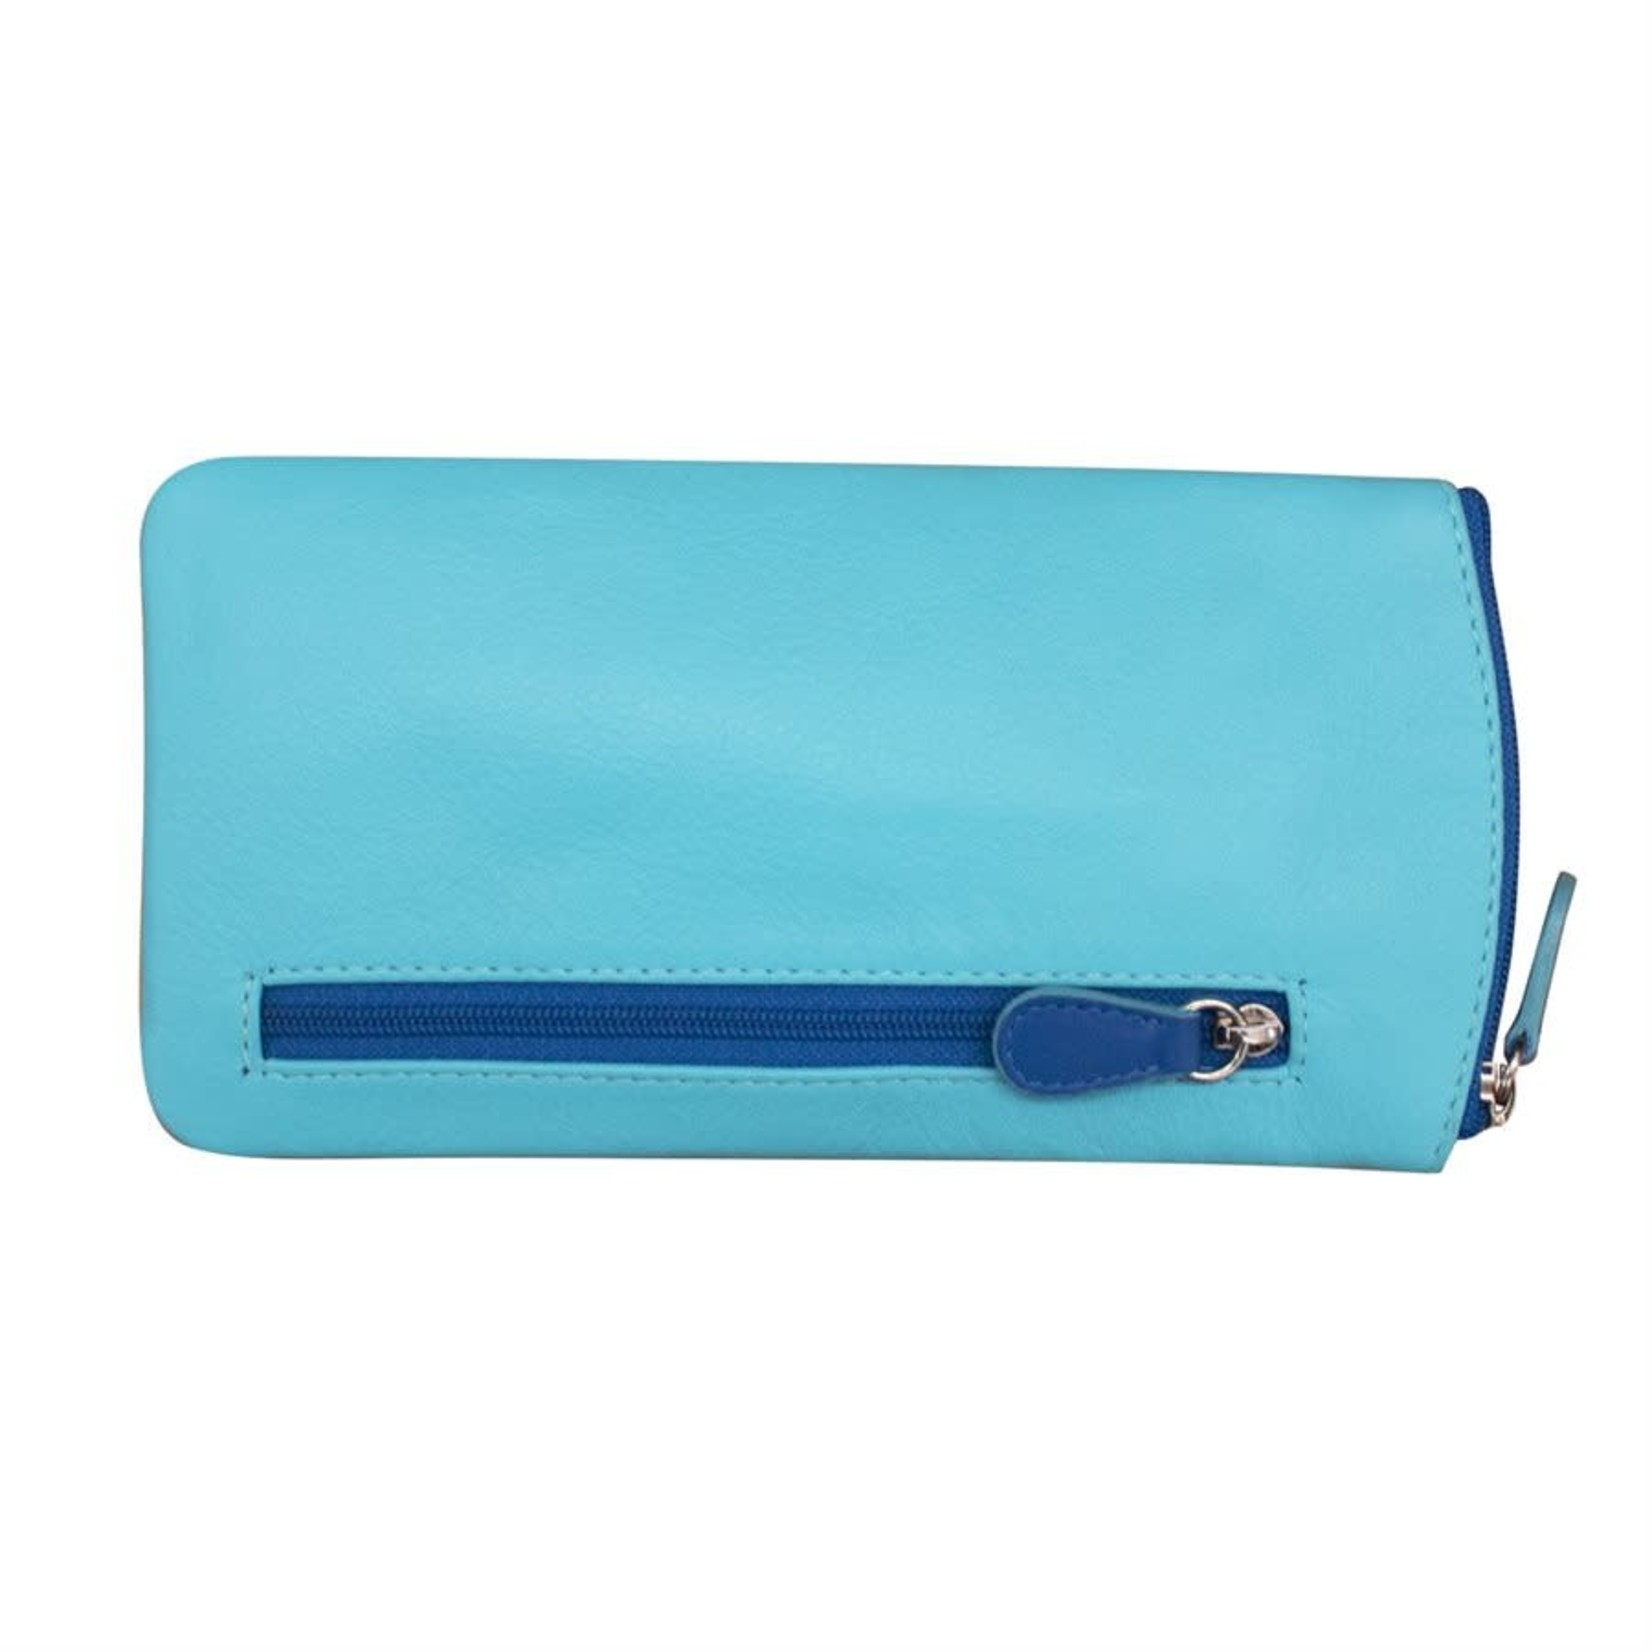 Leather Handbags and Accessories 6462 Mykonos - Leather Eyeglass Case